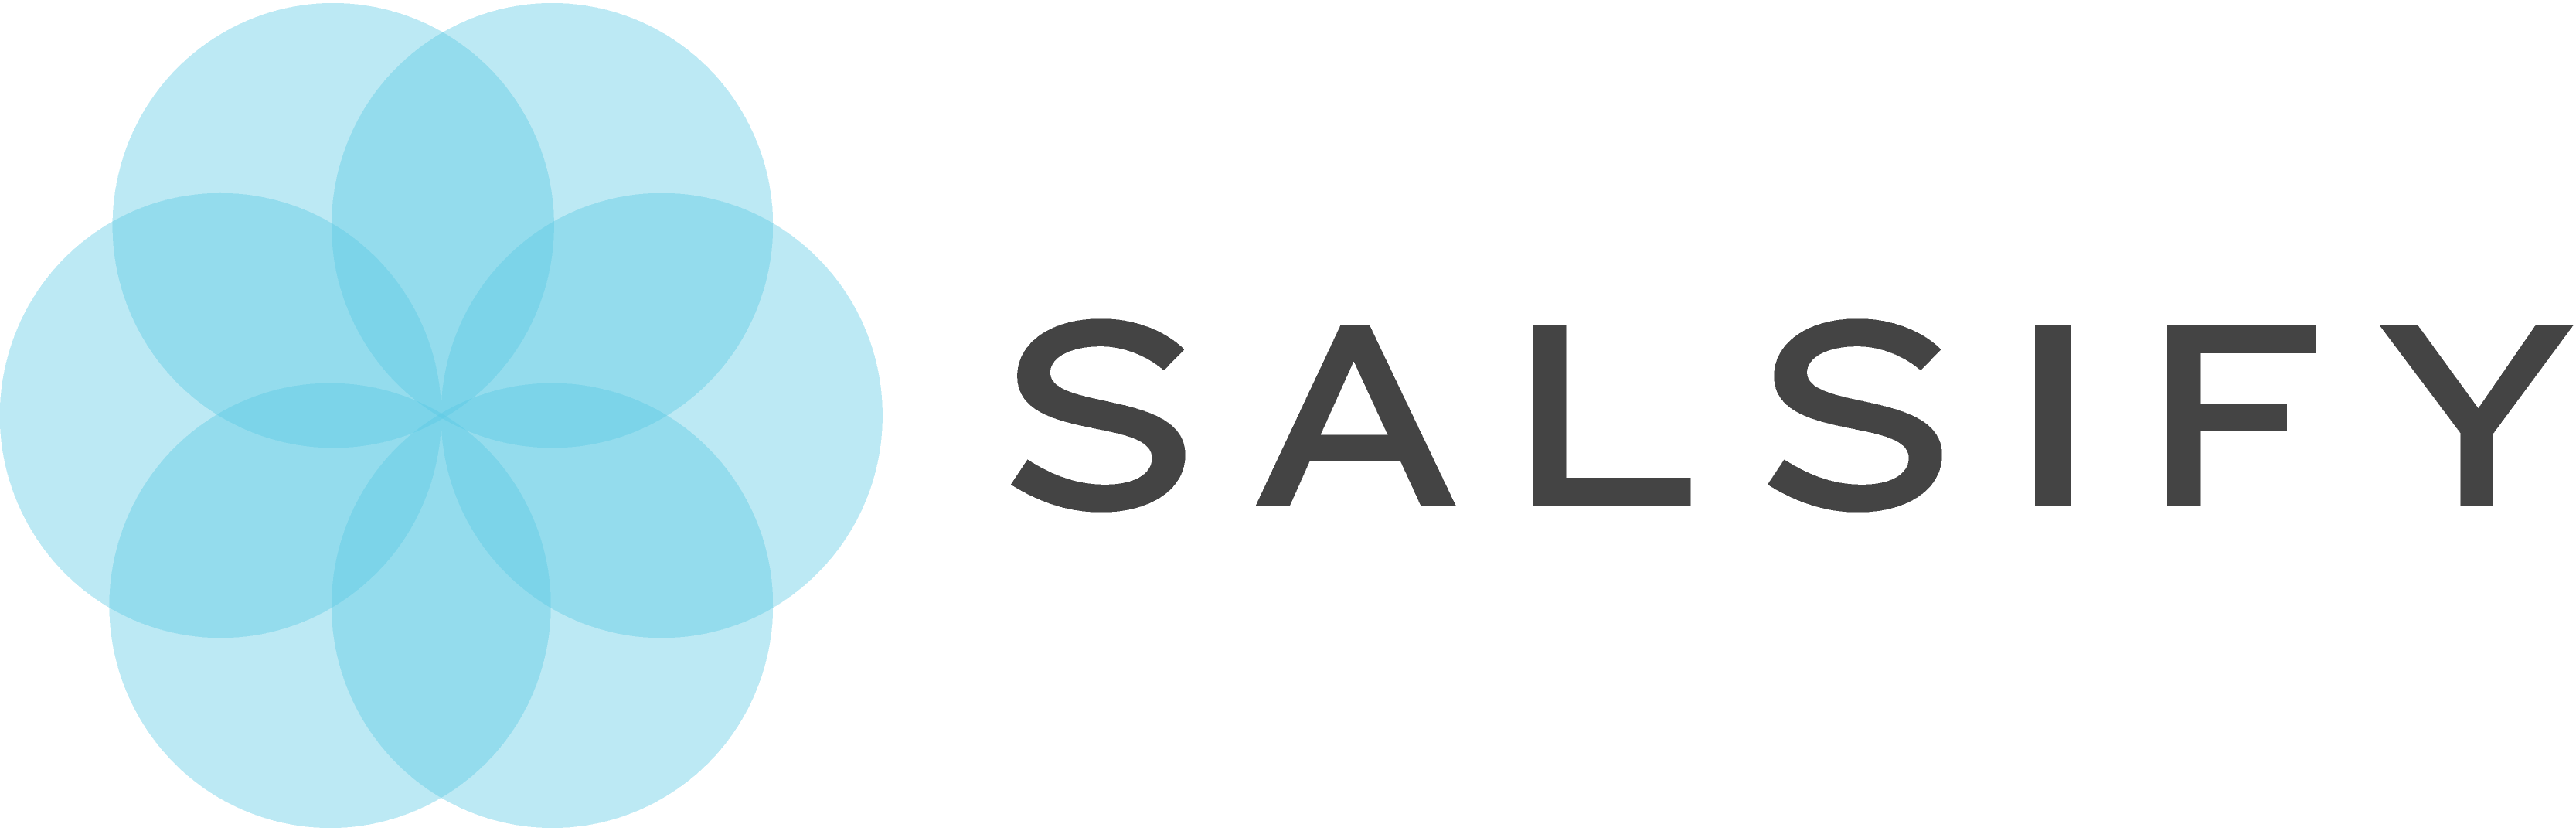 Salsify_Logo_Blue_Flower_Gray_Text-01.png